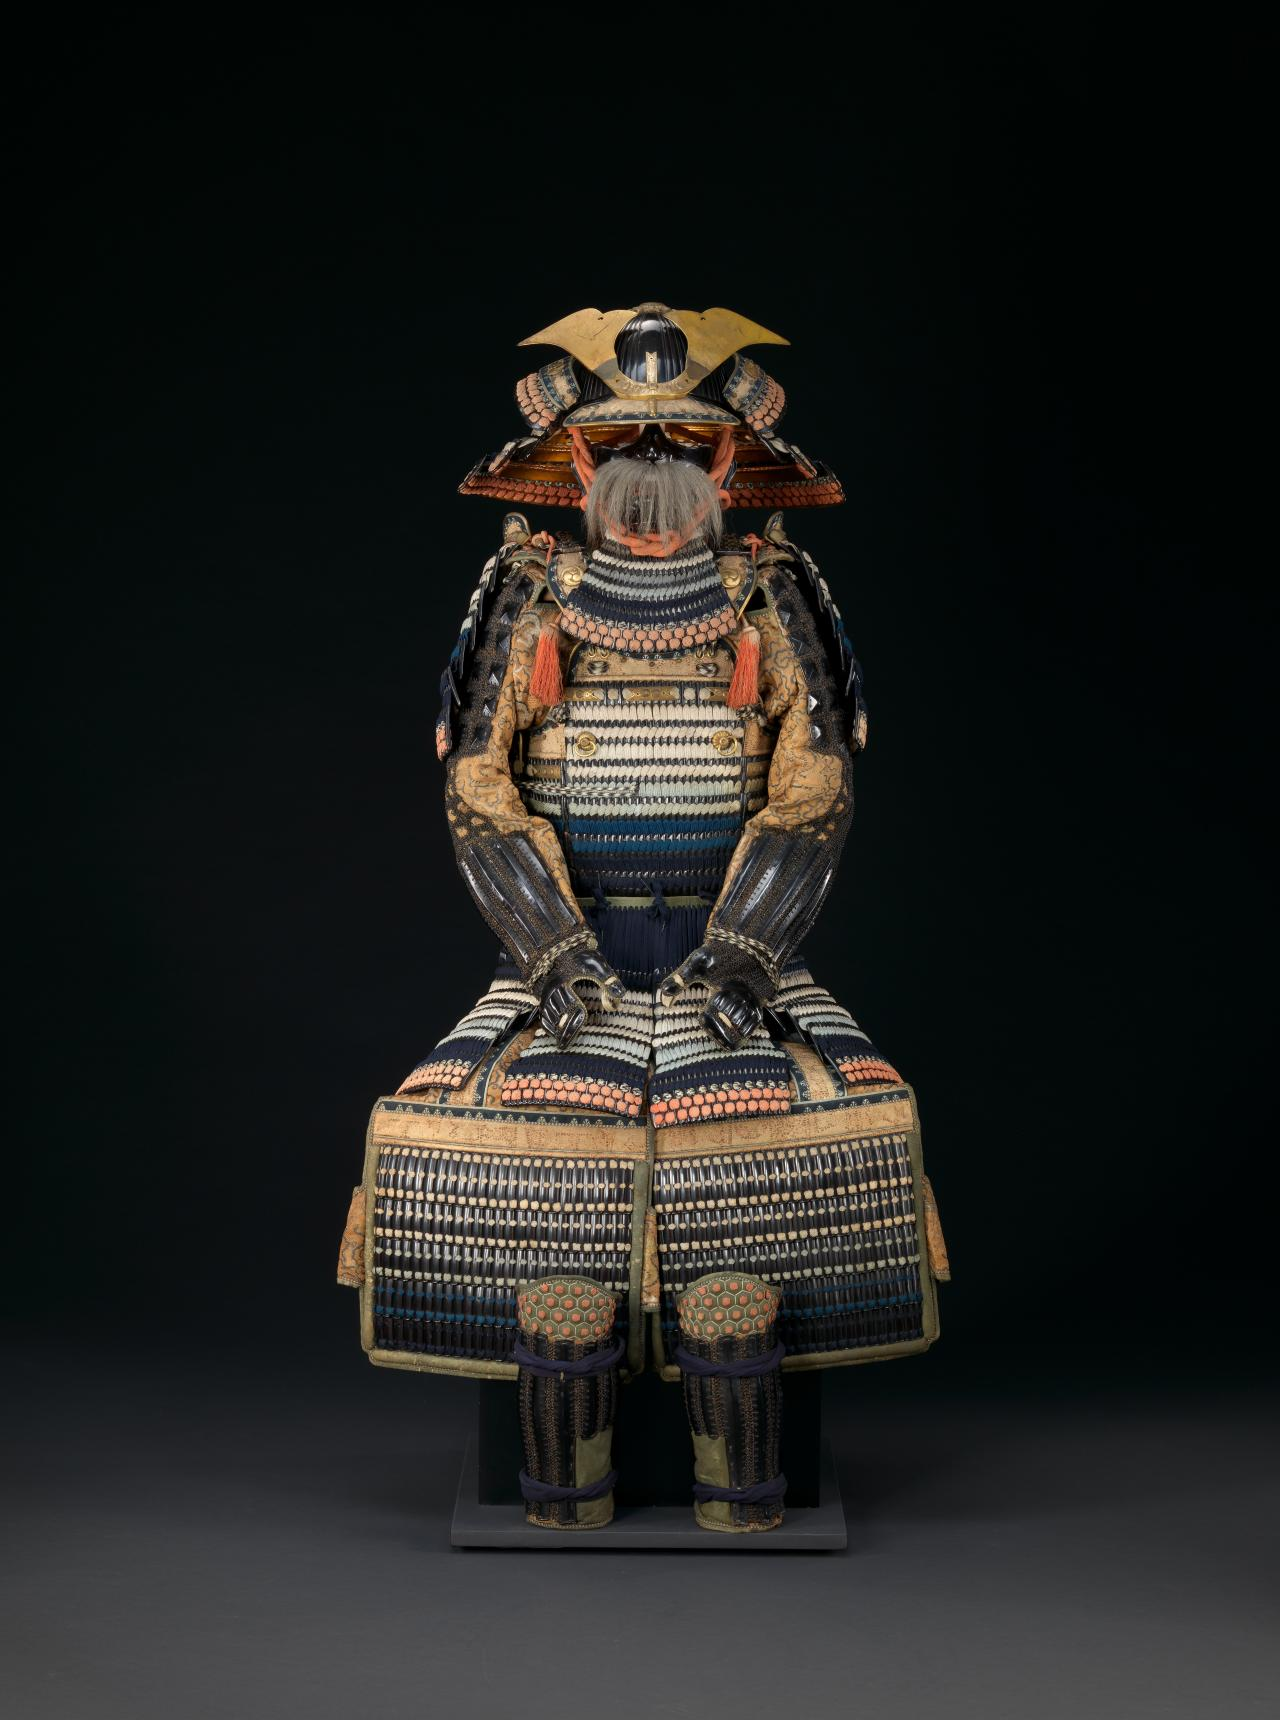 japanes warriors the samurai essay Samurai warrior essay examples the japanese warrior, known as the samurai, has played a significant role in japan's history and culture throughout the centuries.